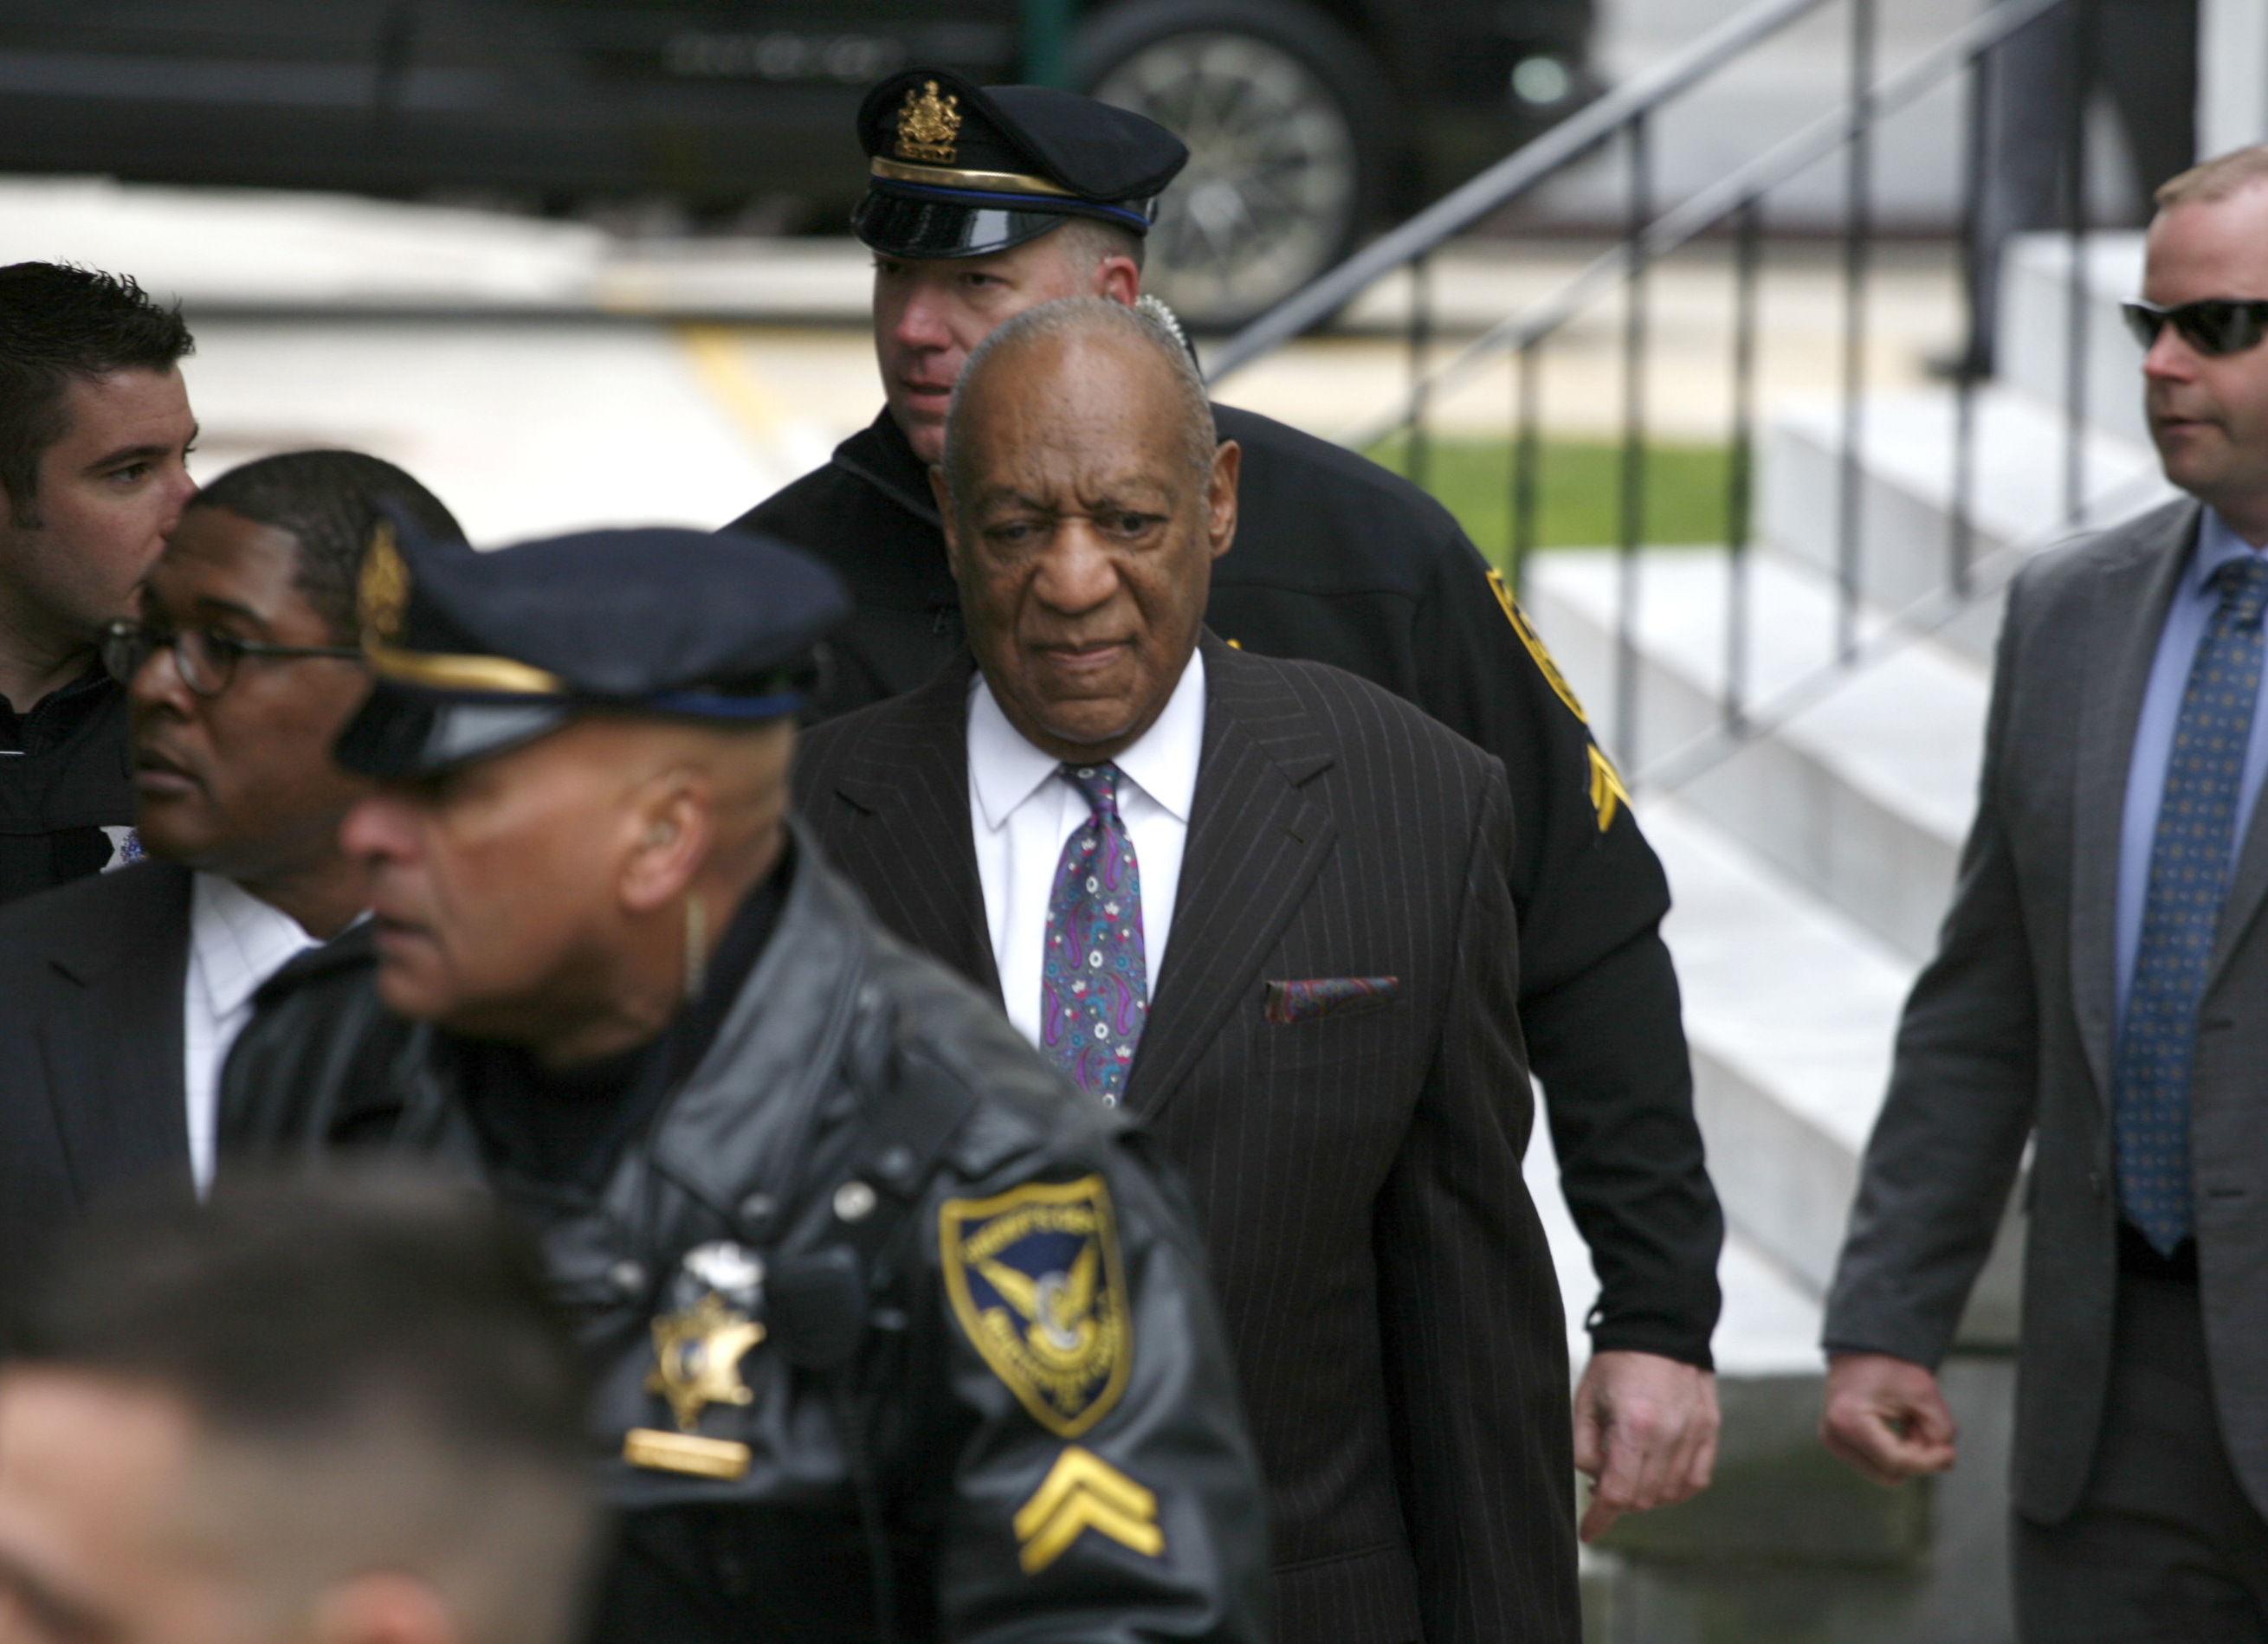 Bill Cosby arrives at Montgomery County Courthouse in Norristown, Pennsylvania. (When: Apr. 8 2018.Credit: W.Wade/WENN)